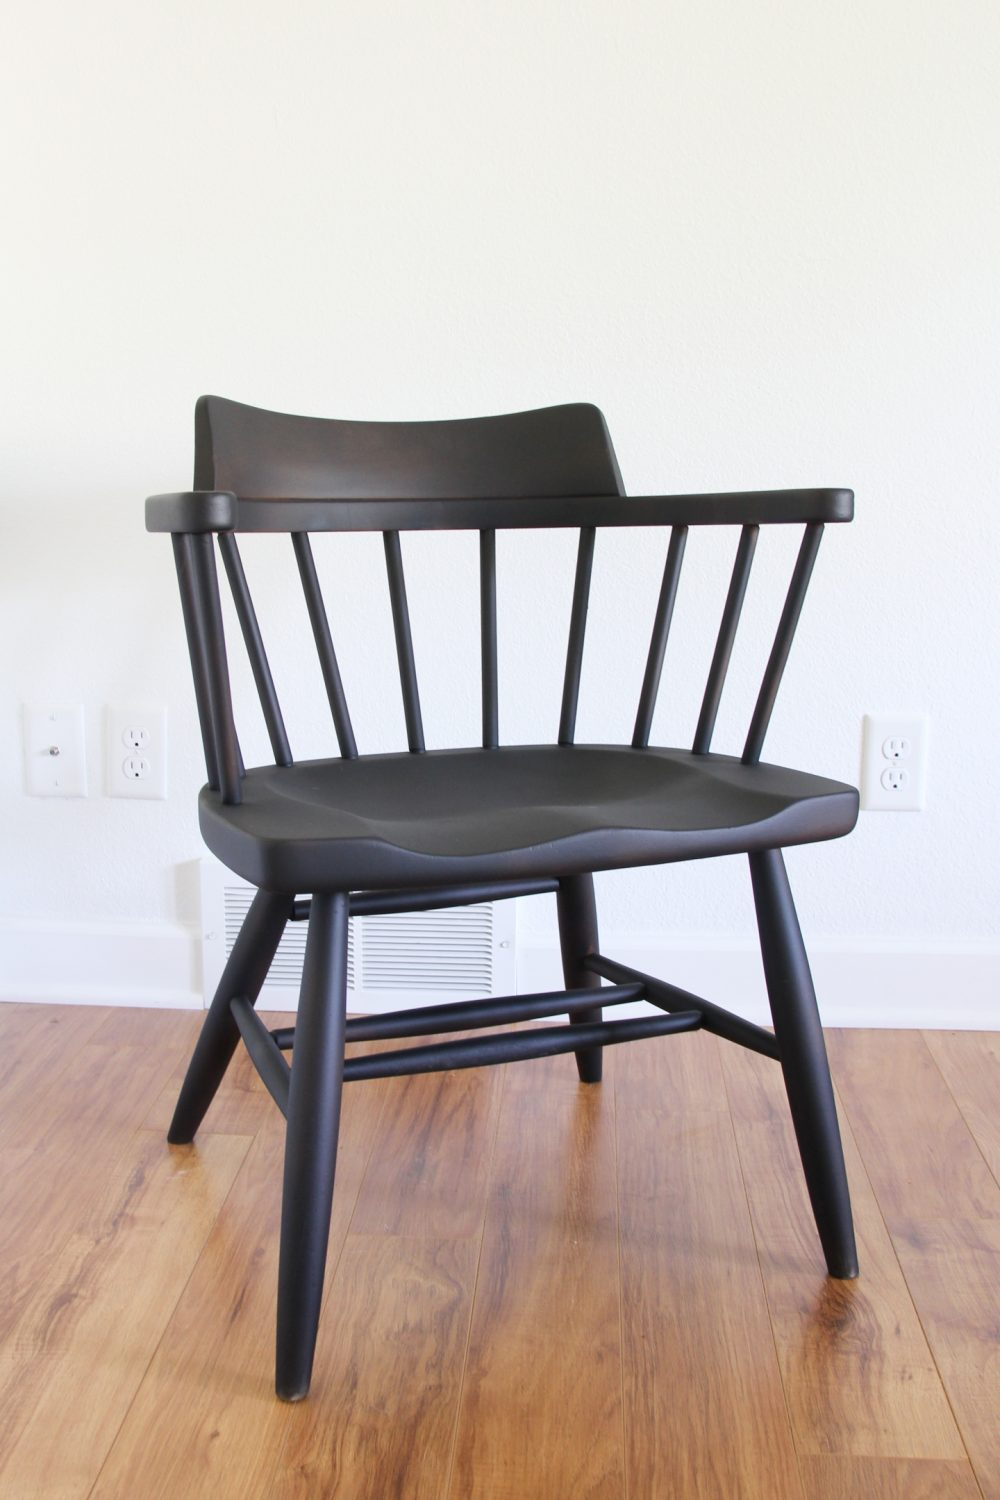 Painting spindle dining chairs black | Melissa Lynch | melissalynch.com